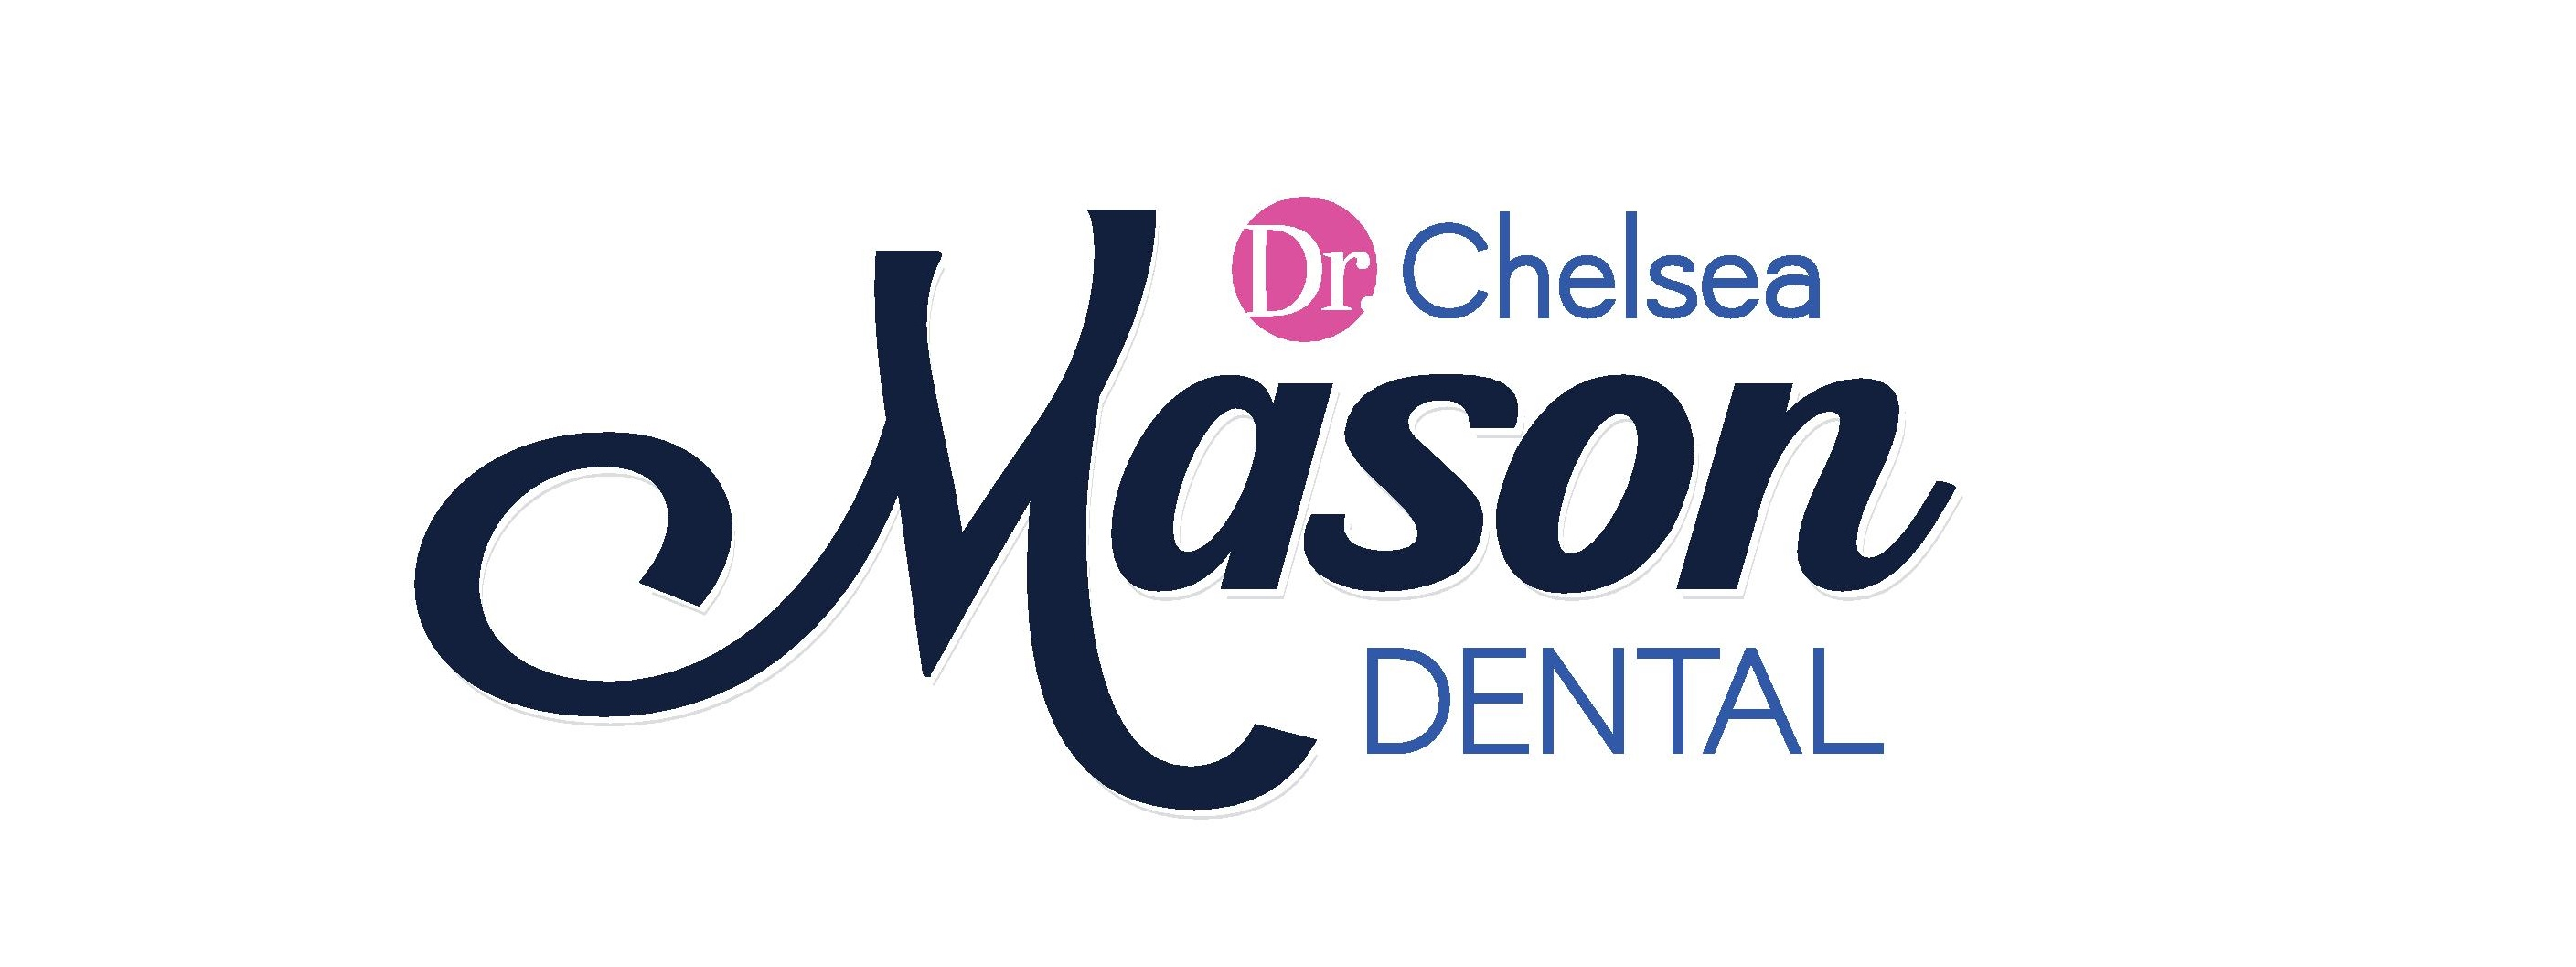 Dr. Chelsea Mason Dental reviews | Cosmetic Dentists at 3433 East Midland Road - Bay City MI